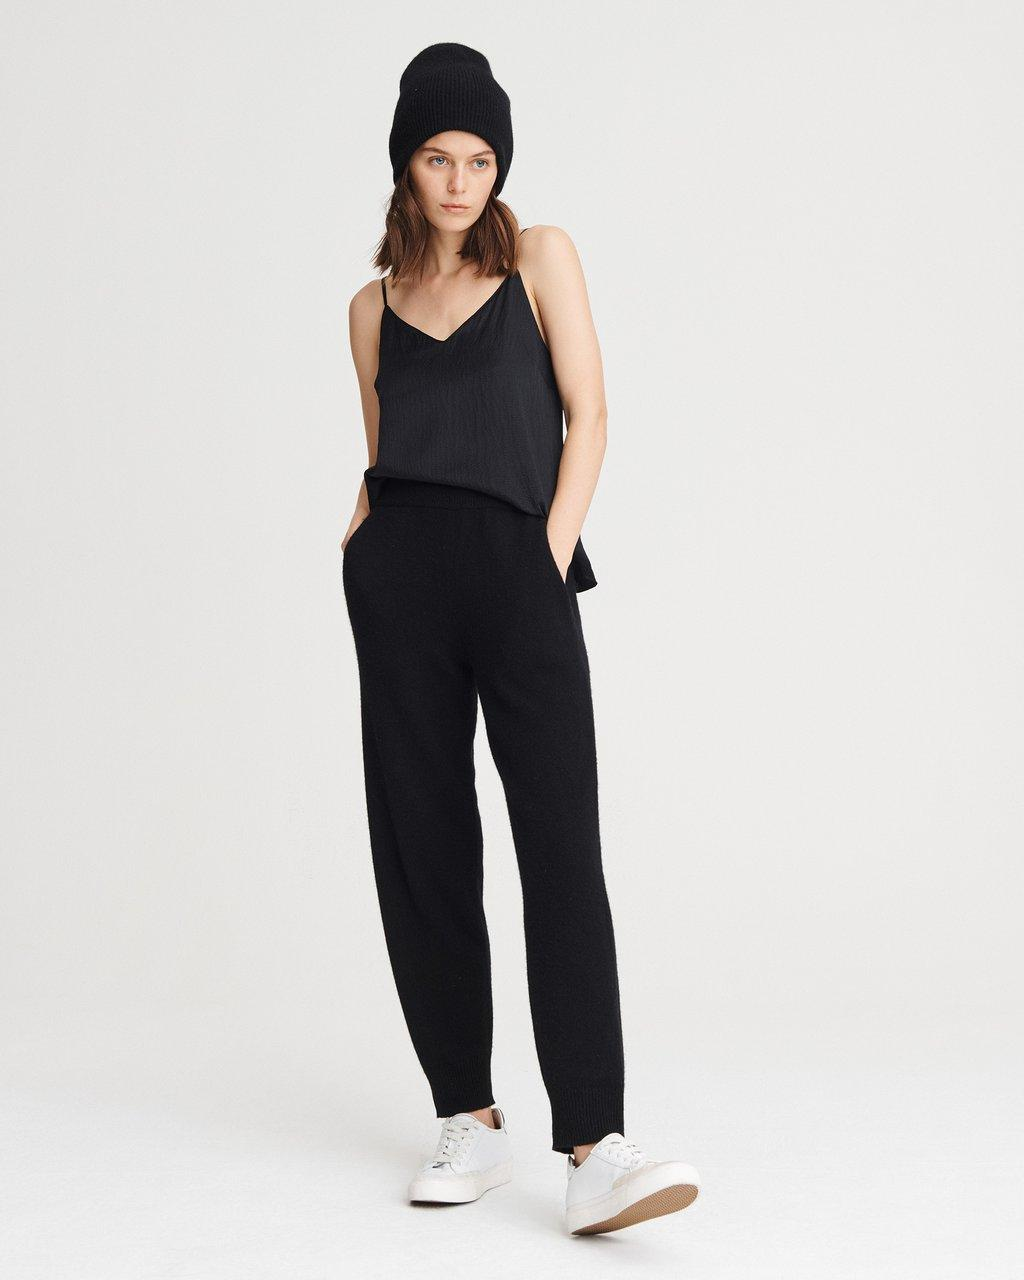 LOGAN CASHMERE PANTS